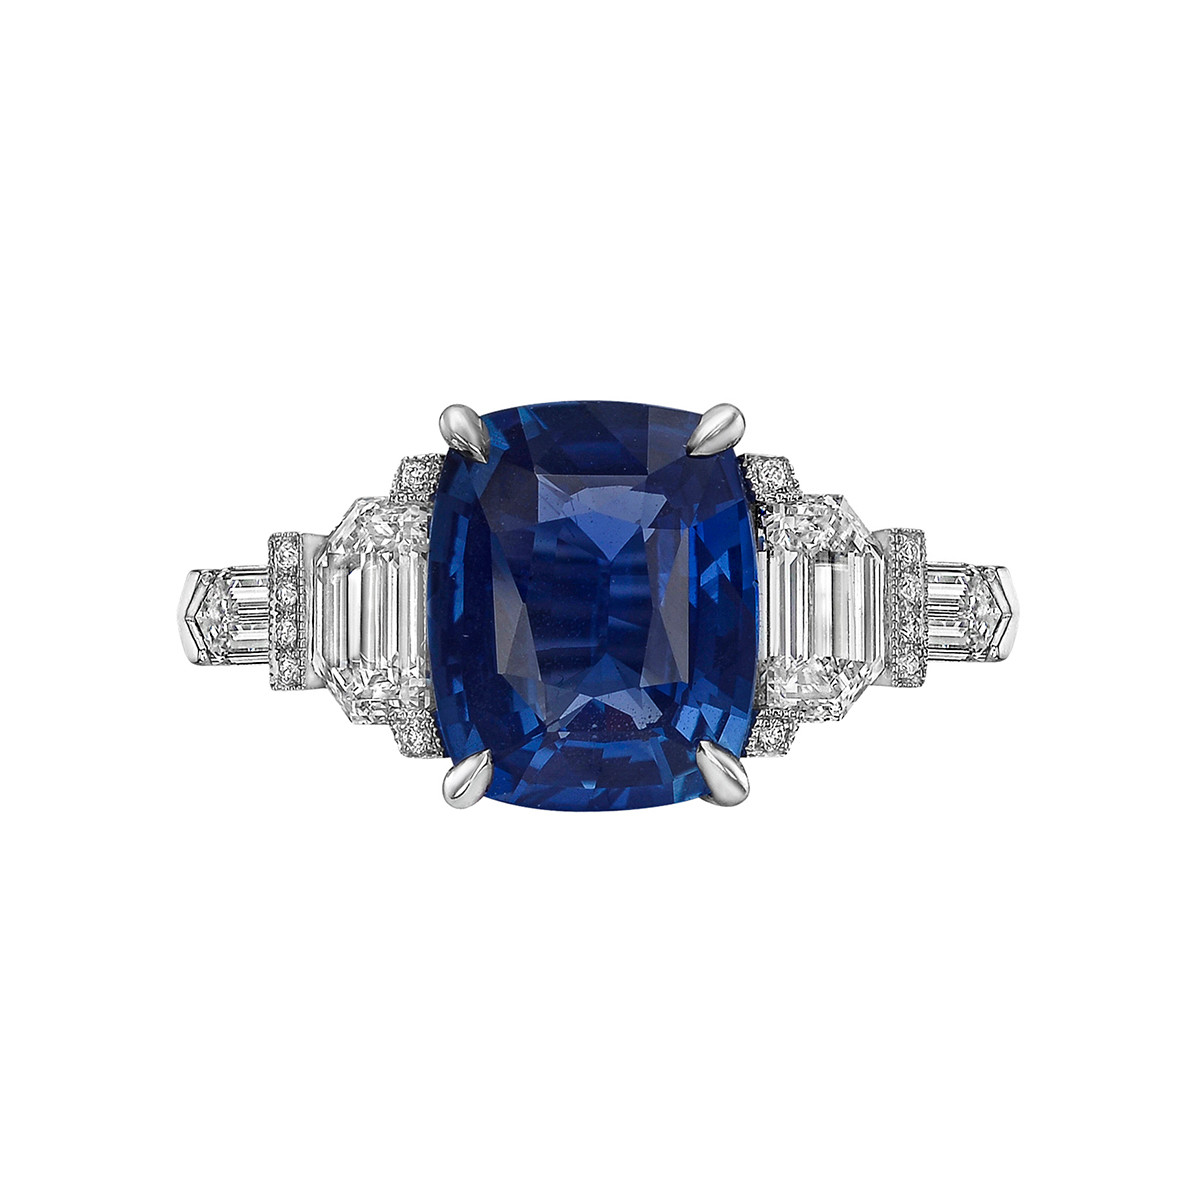 3.17ct Cushion-Cut Sapphire & Diamond Ring